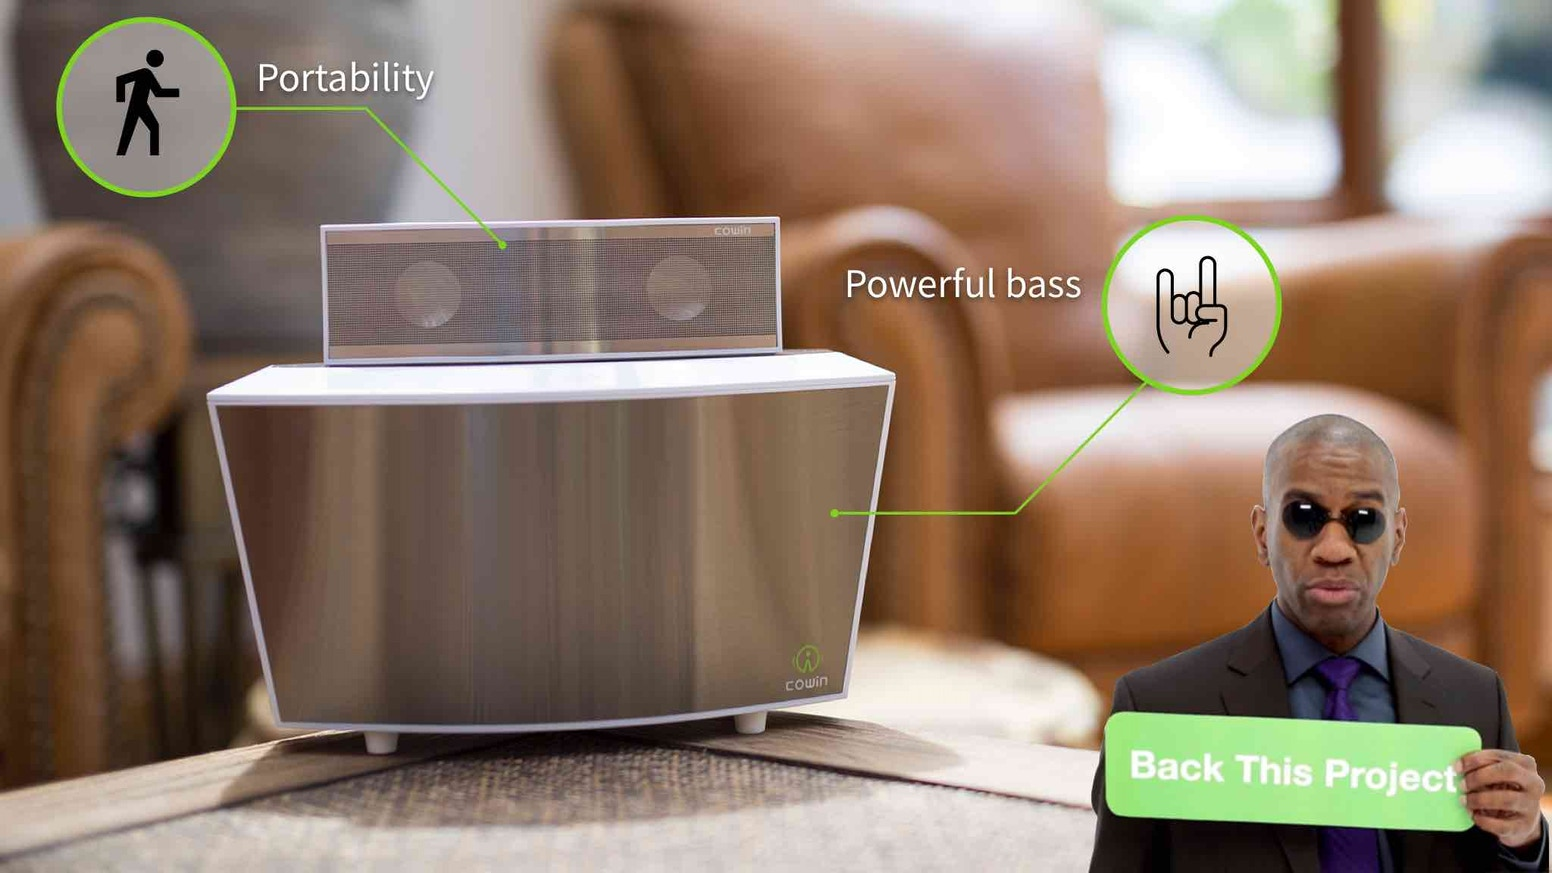 Two-piece speaker system combines detachable mini Sound Bar and powerful ported subwoofer Bass Station with wireless charging